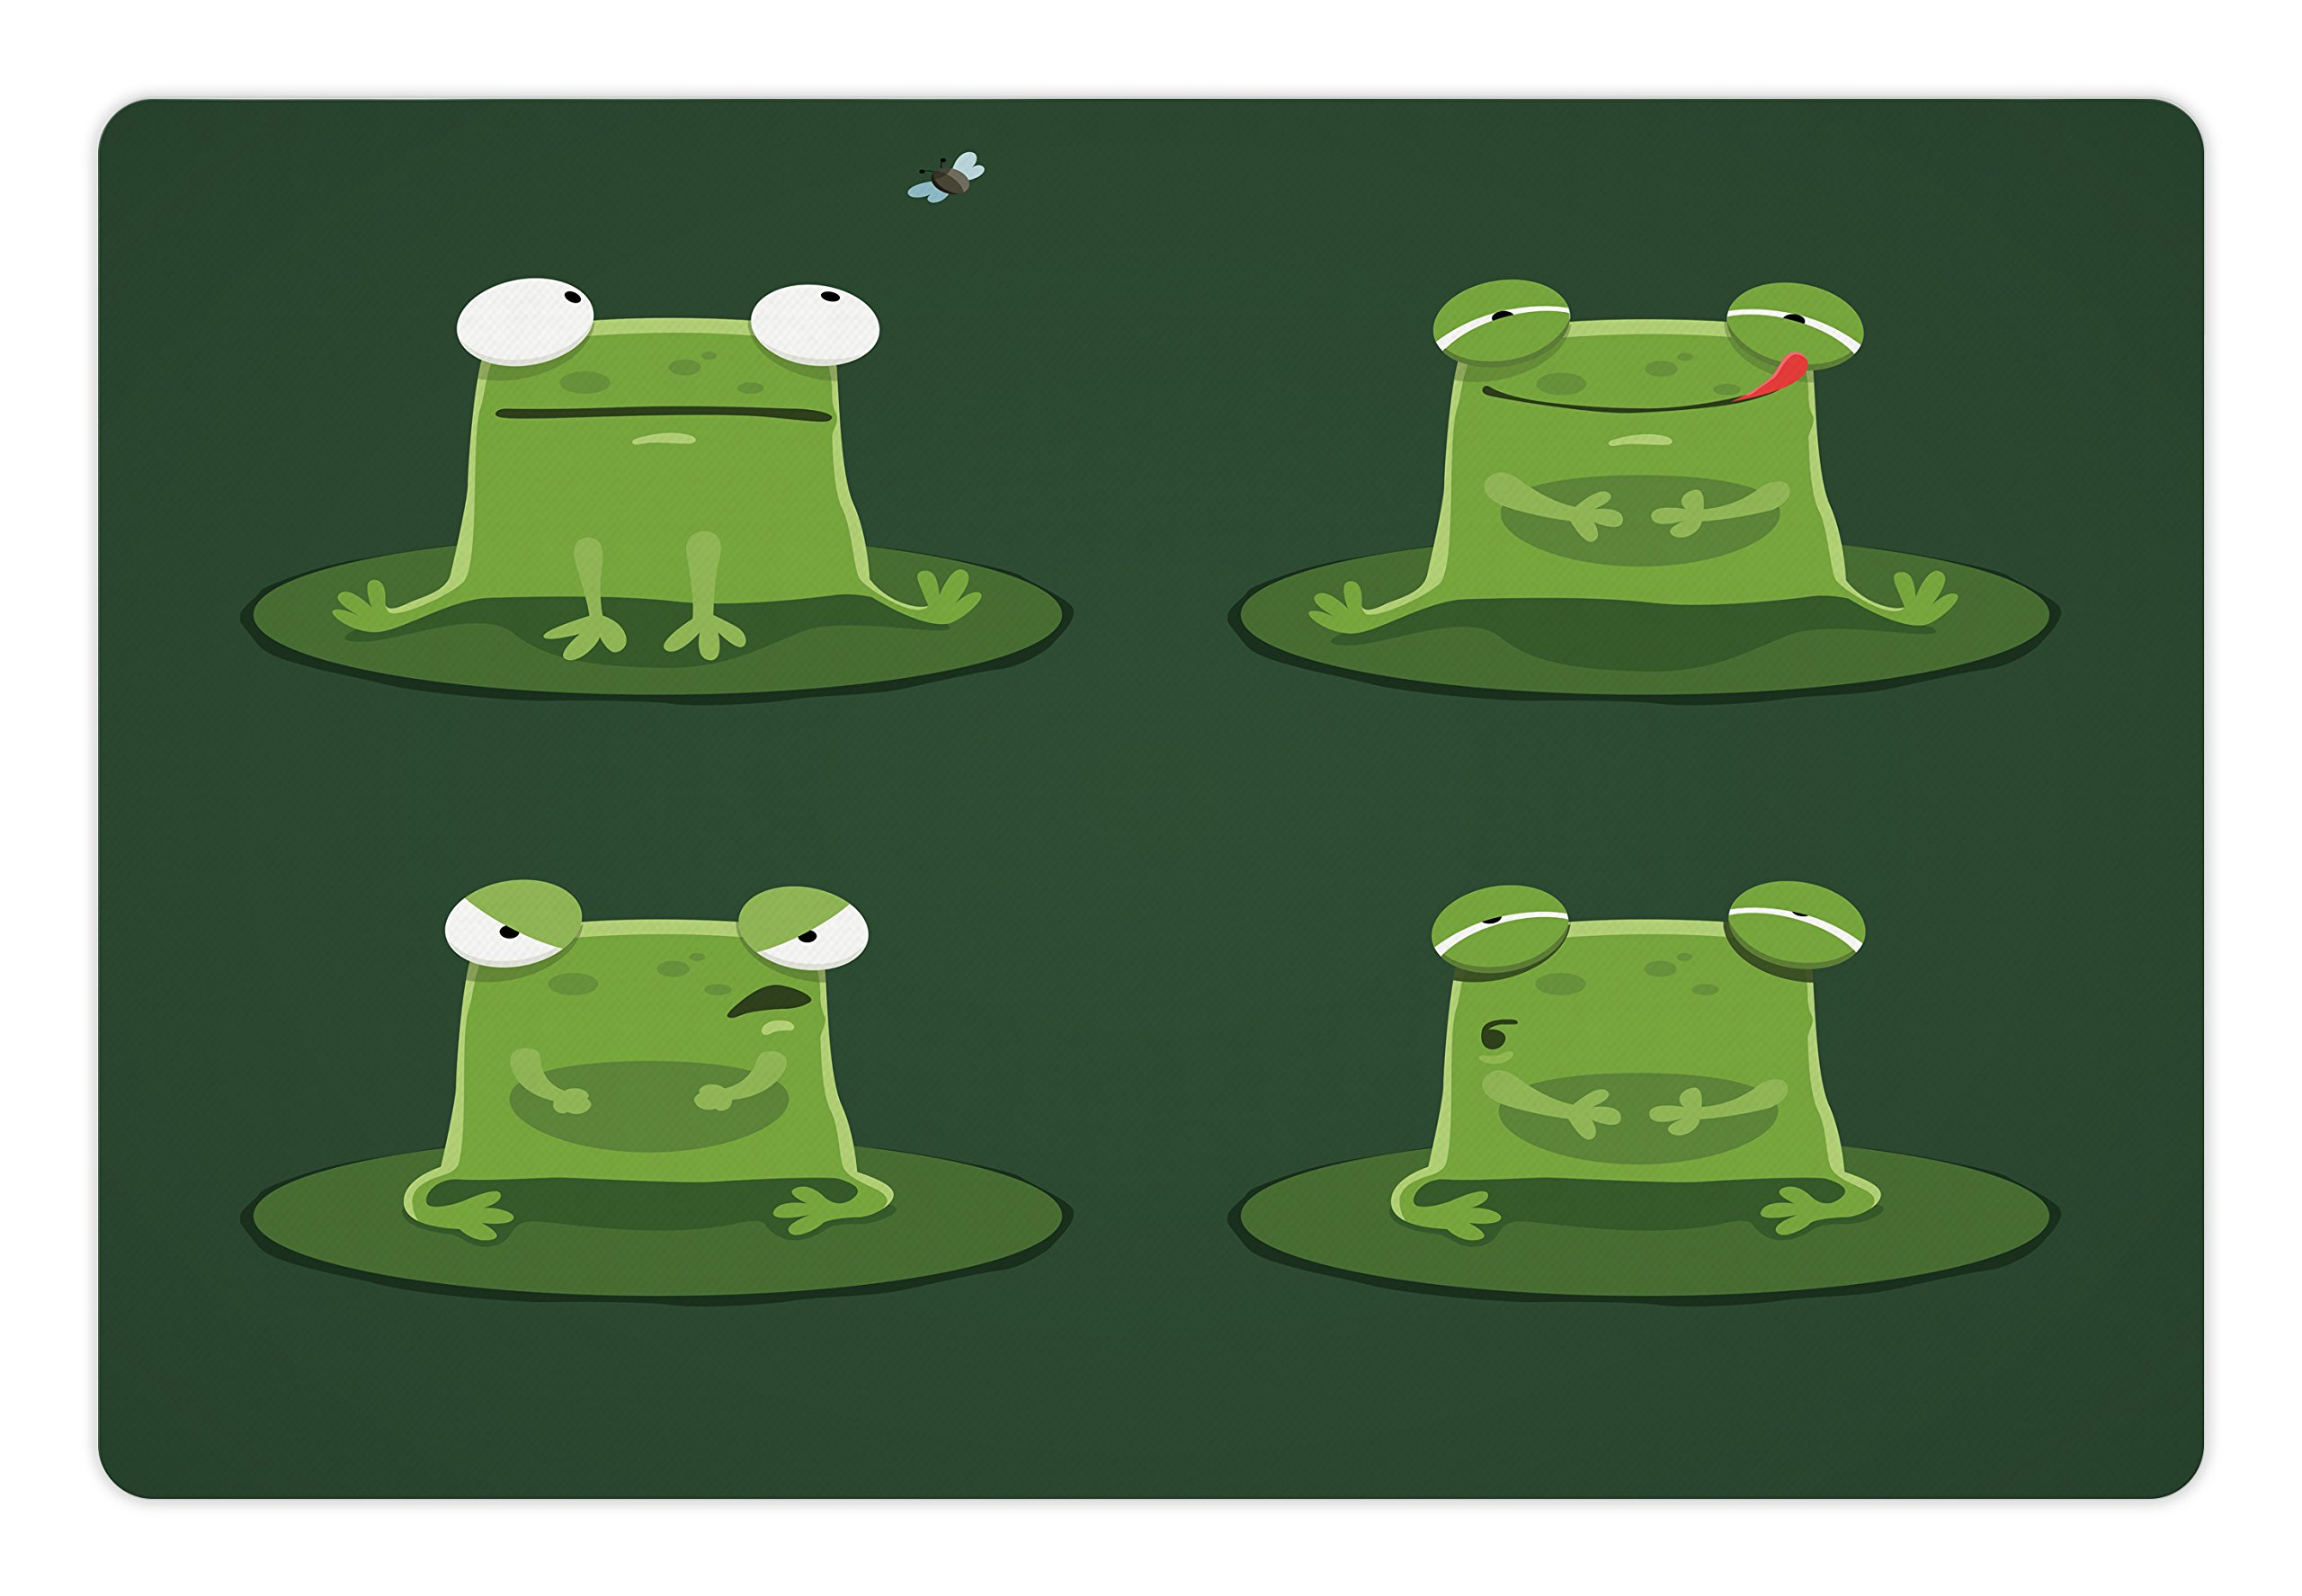 Ambesonne Funny Pet Mat for Food and Water, Funny Muzzy Frog on Lily Pad in Pond Hunting Tasty Fly Expressions Cartoon Animal, Rectangle Non-Slip Rubber Mat for Dogs and Cats, Bottle green